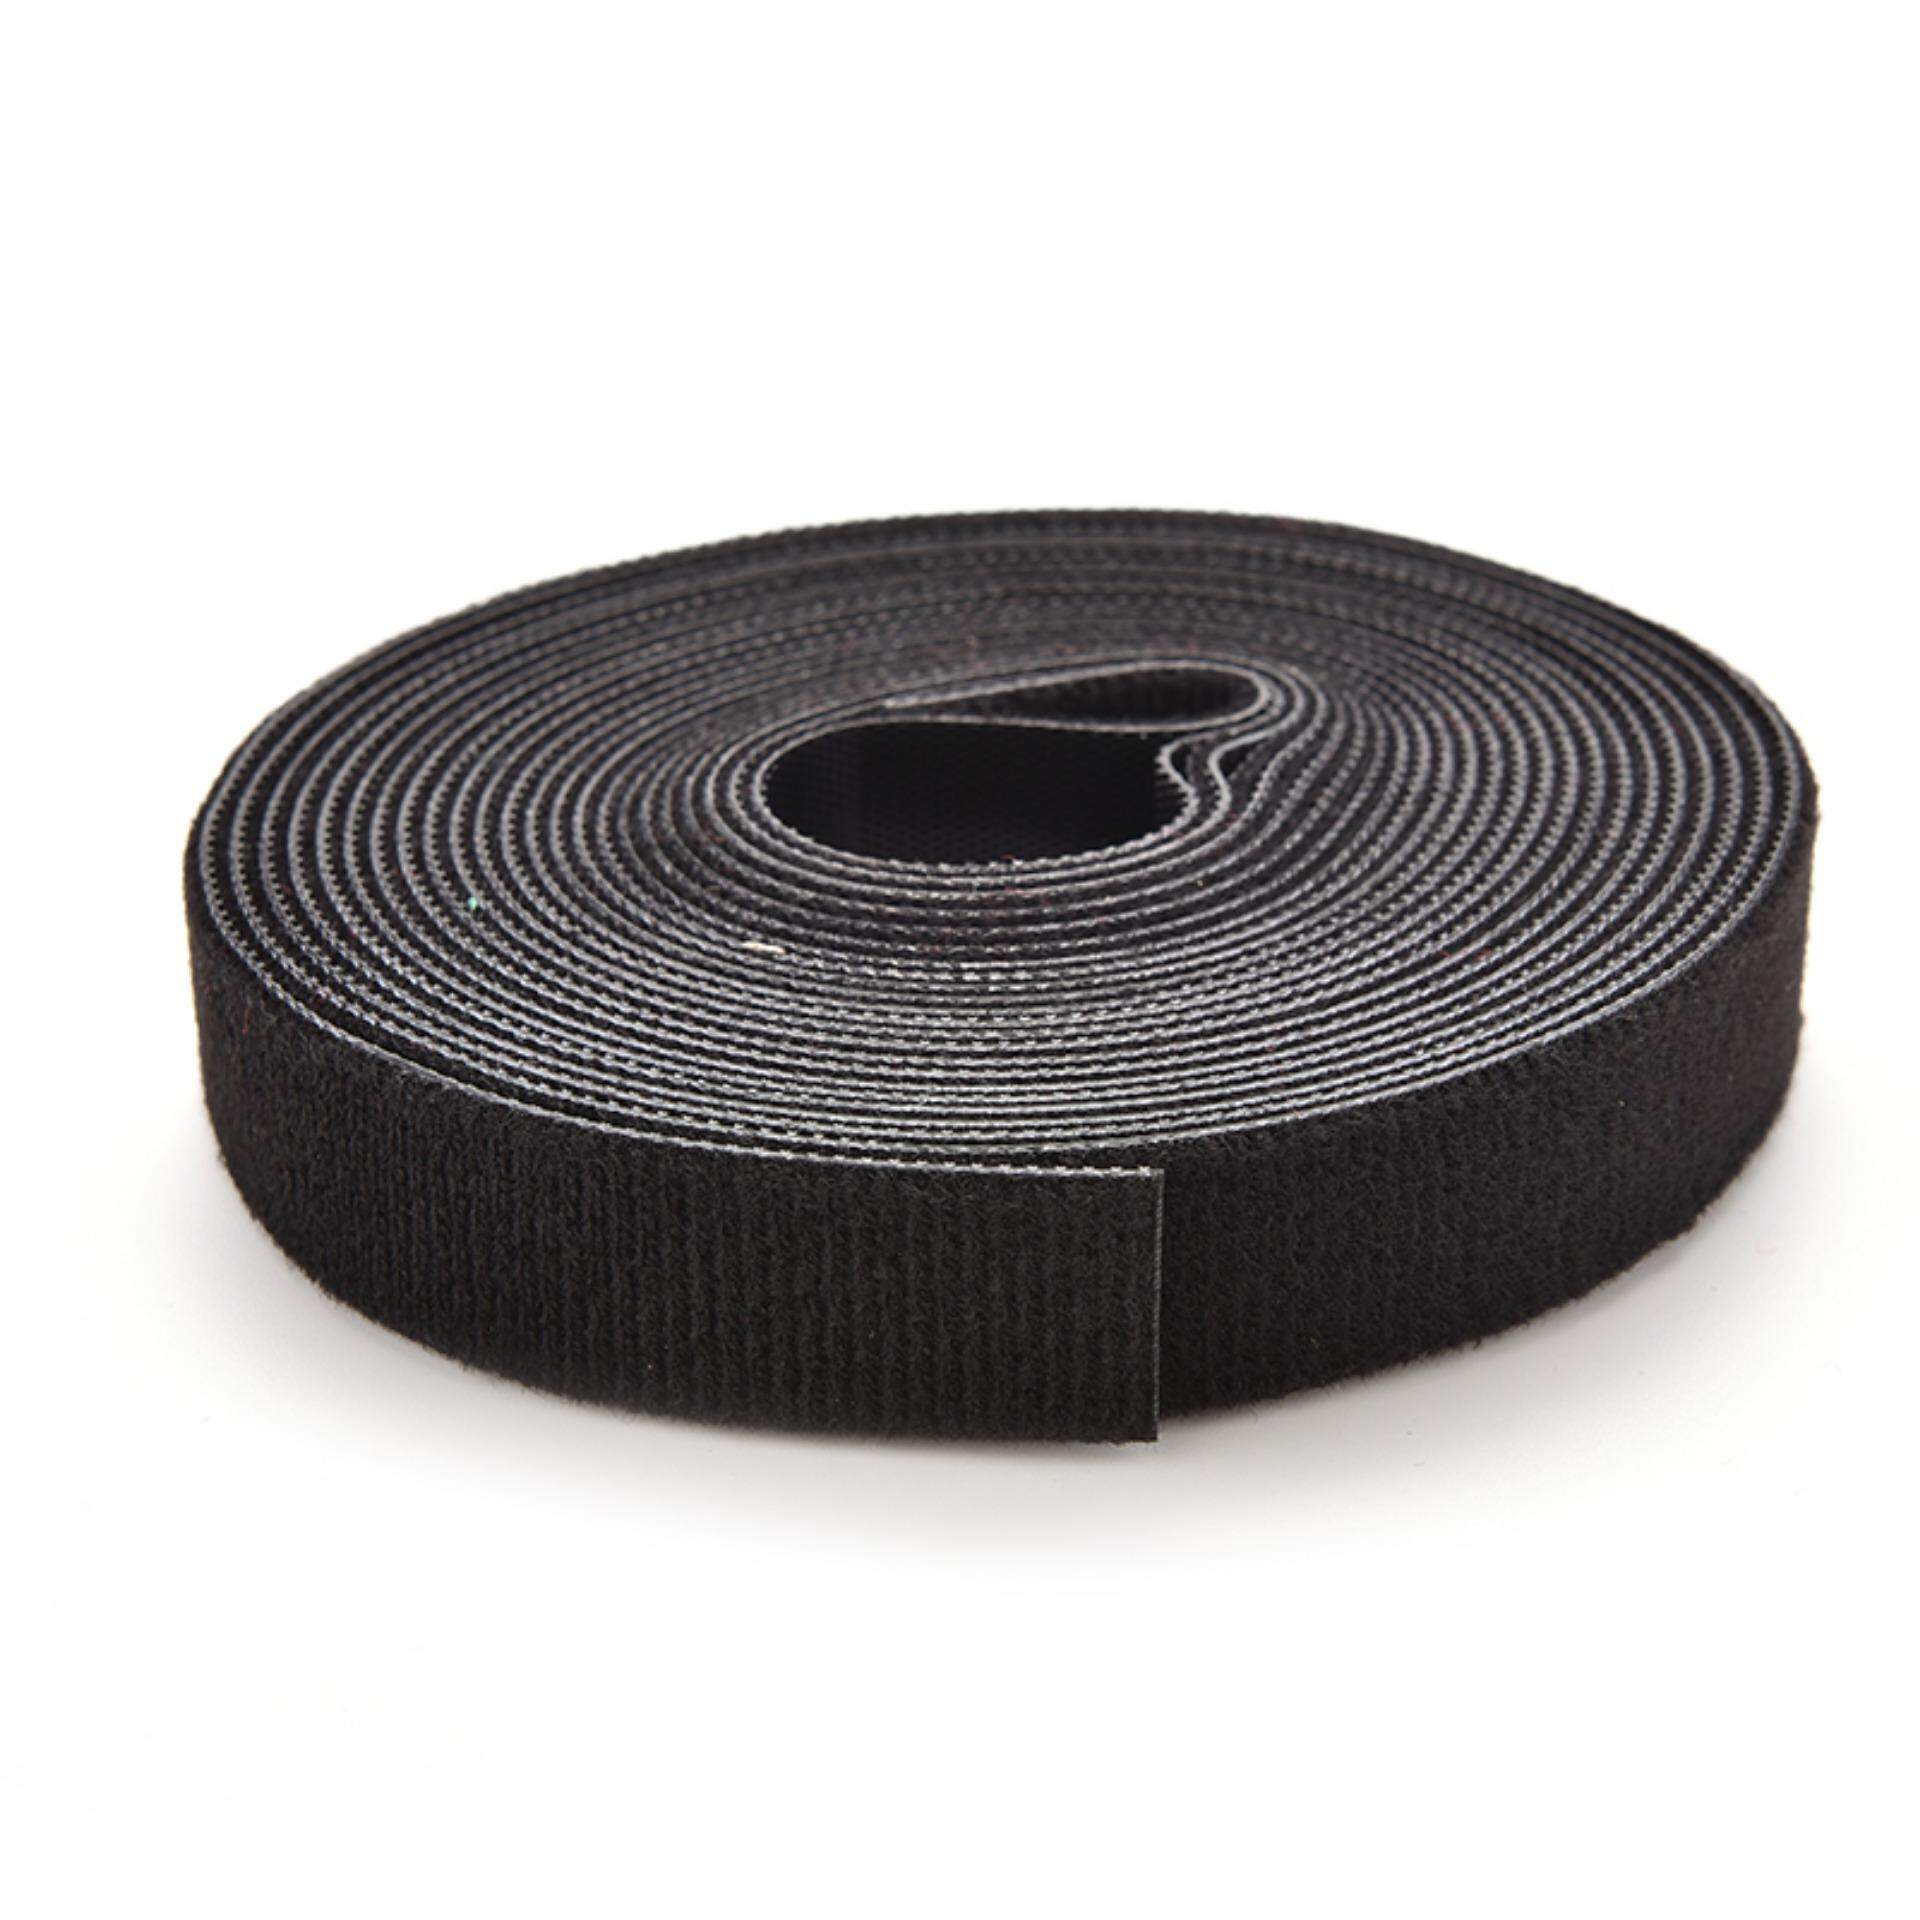 5 Yards Self Attaching Velcro Hook & Loop Tape Fastener 1 Roll 500cm Black